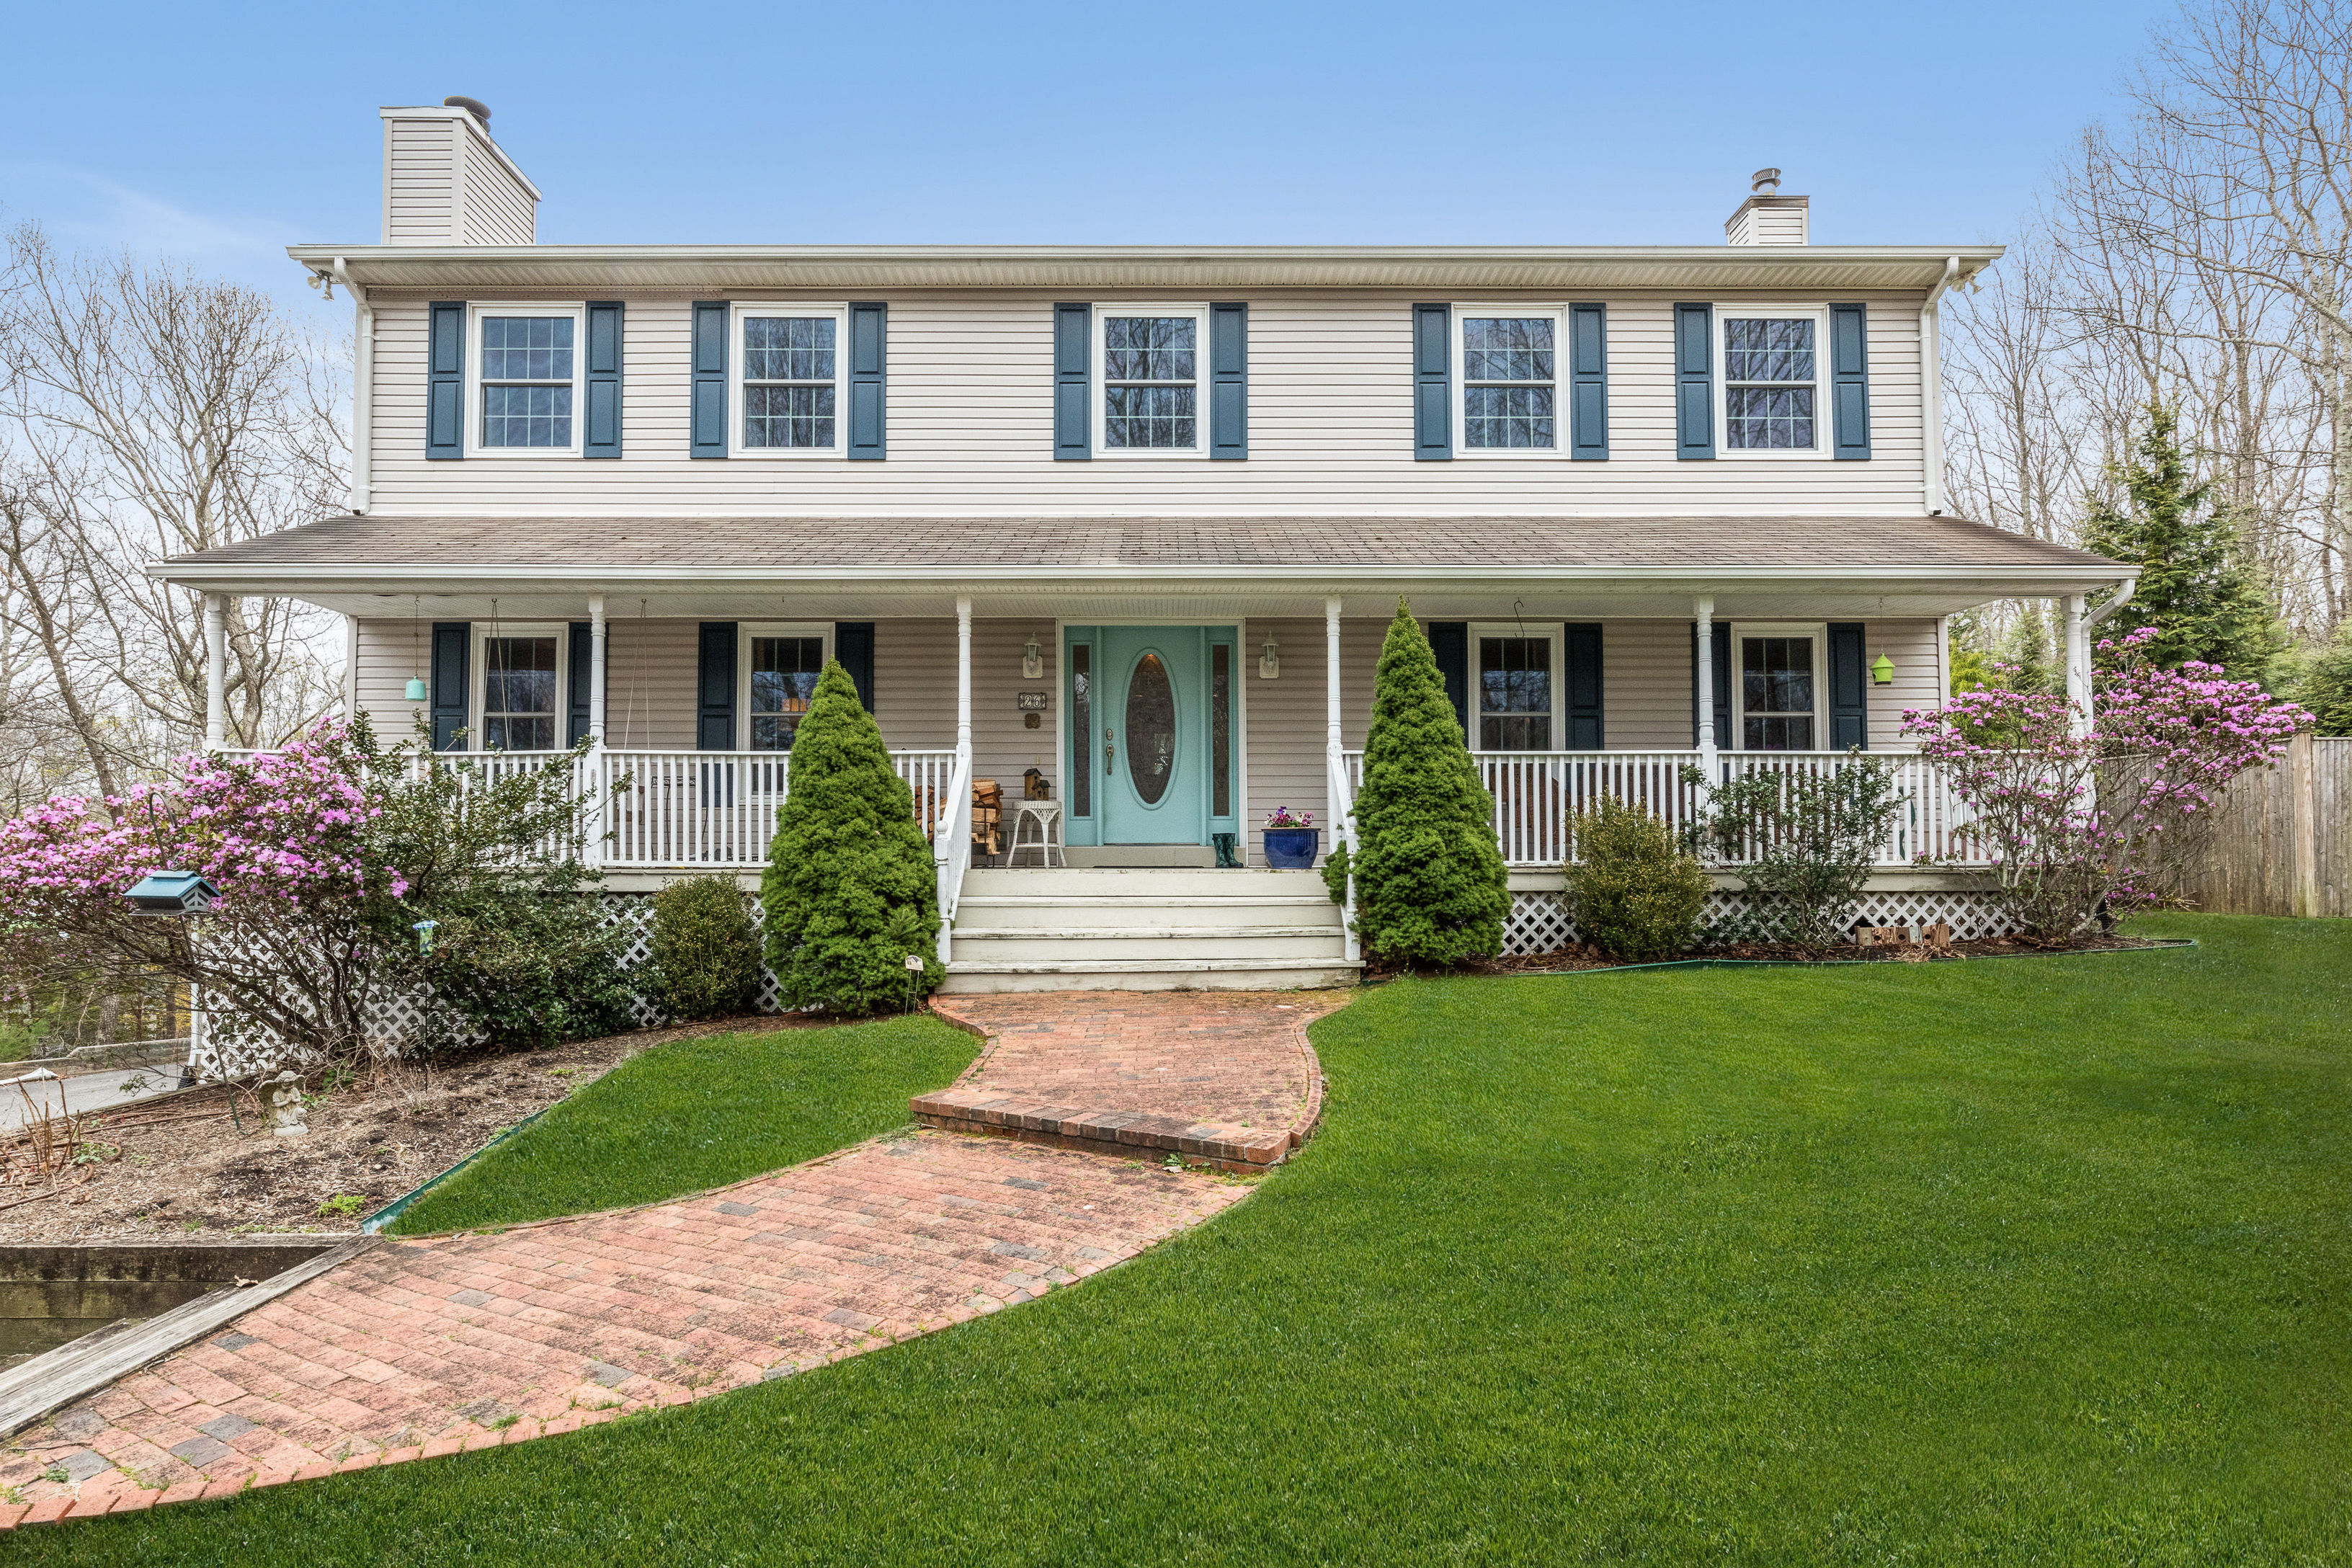 26 Harborview Dr - Sag Harbor, New York